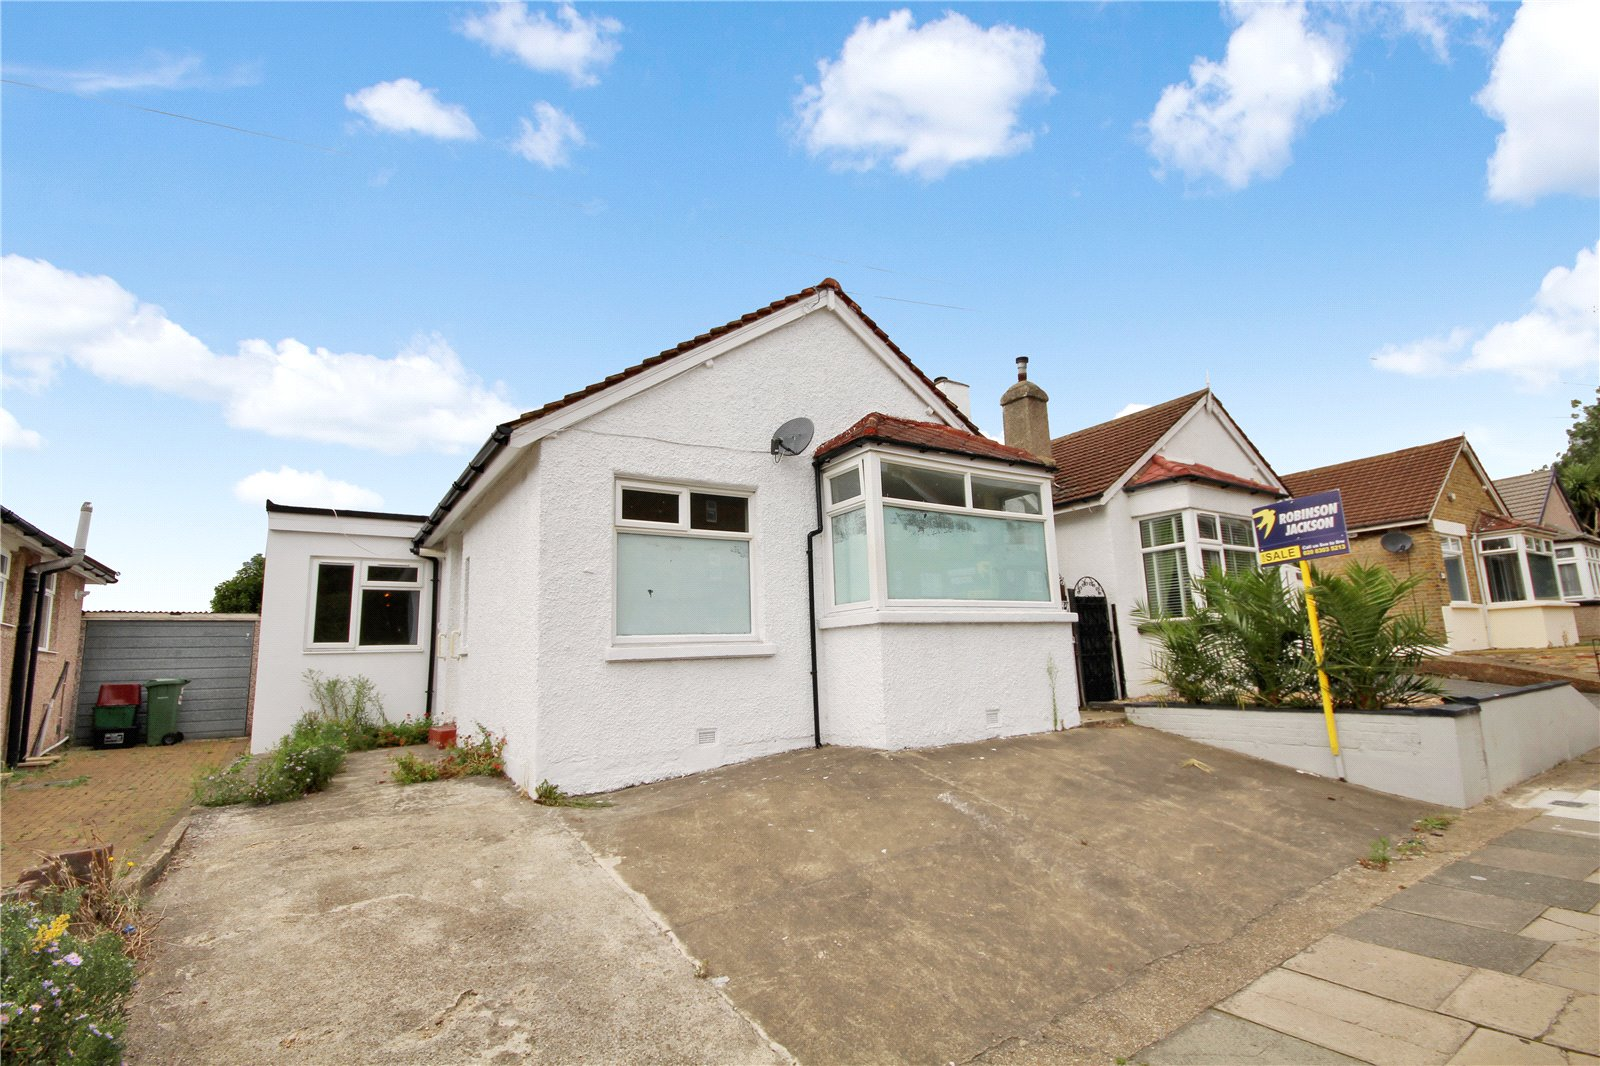 Danson Lane, South Welling, Kent, DA16